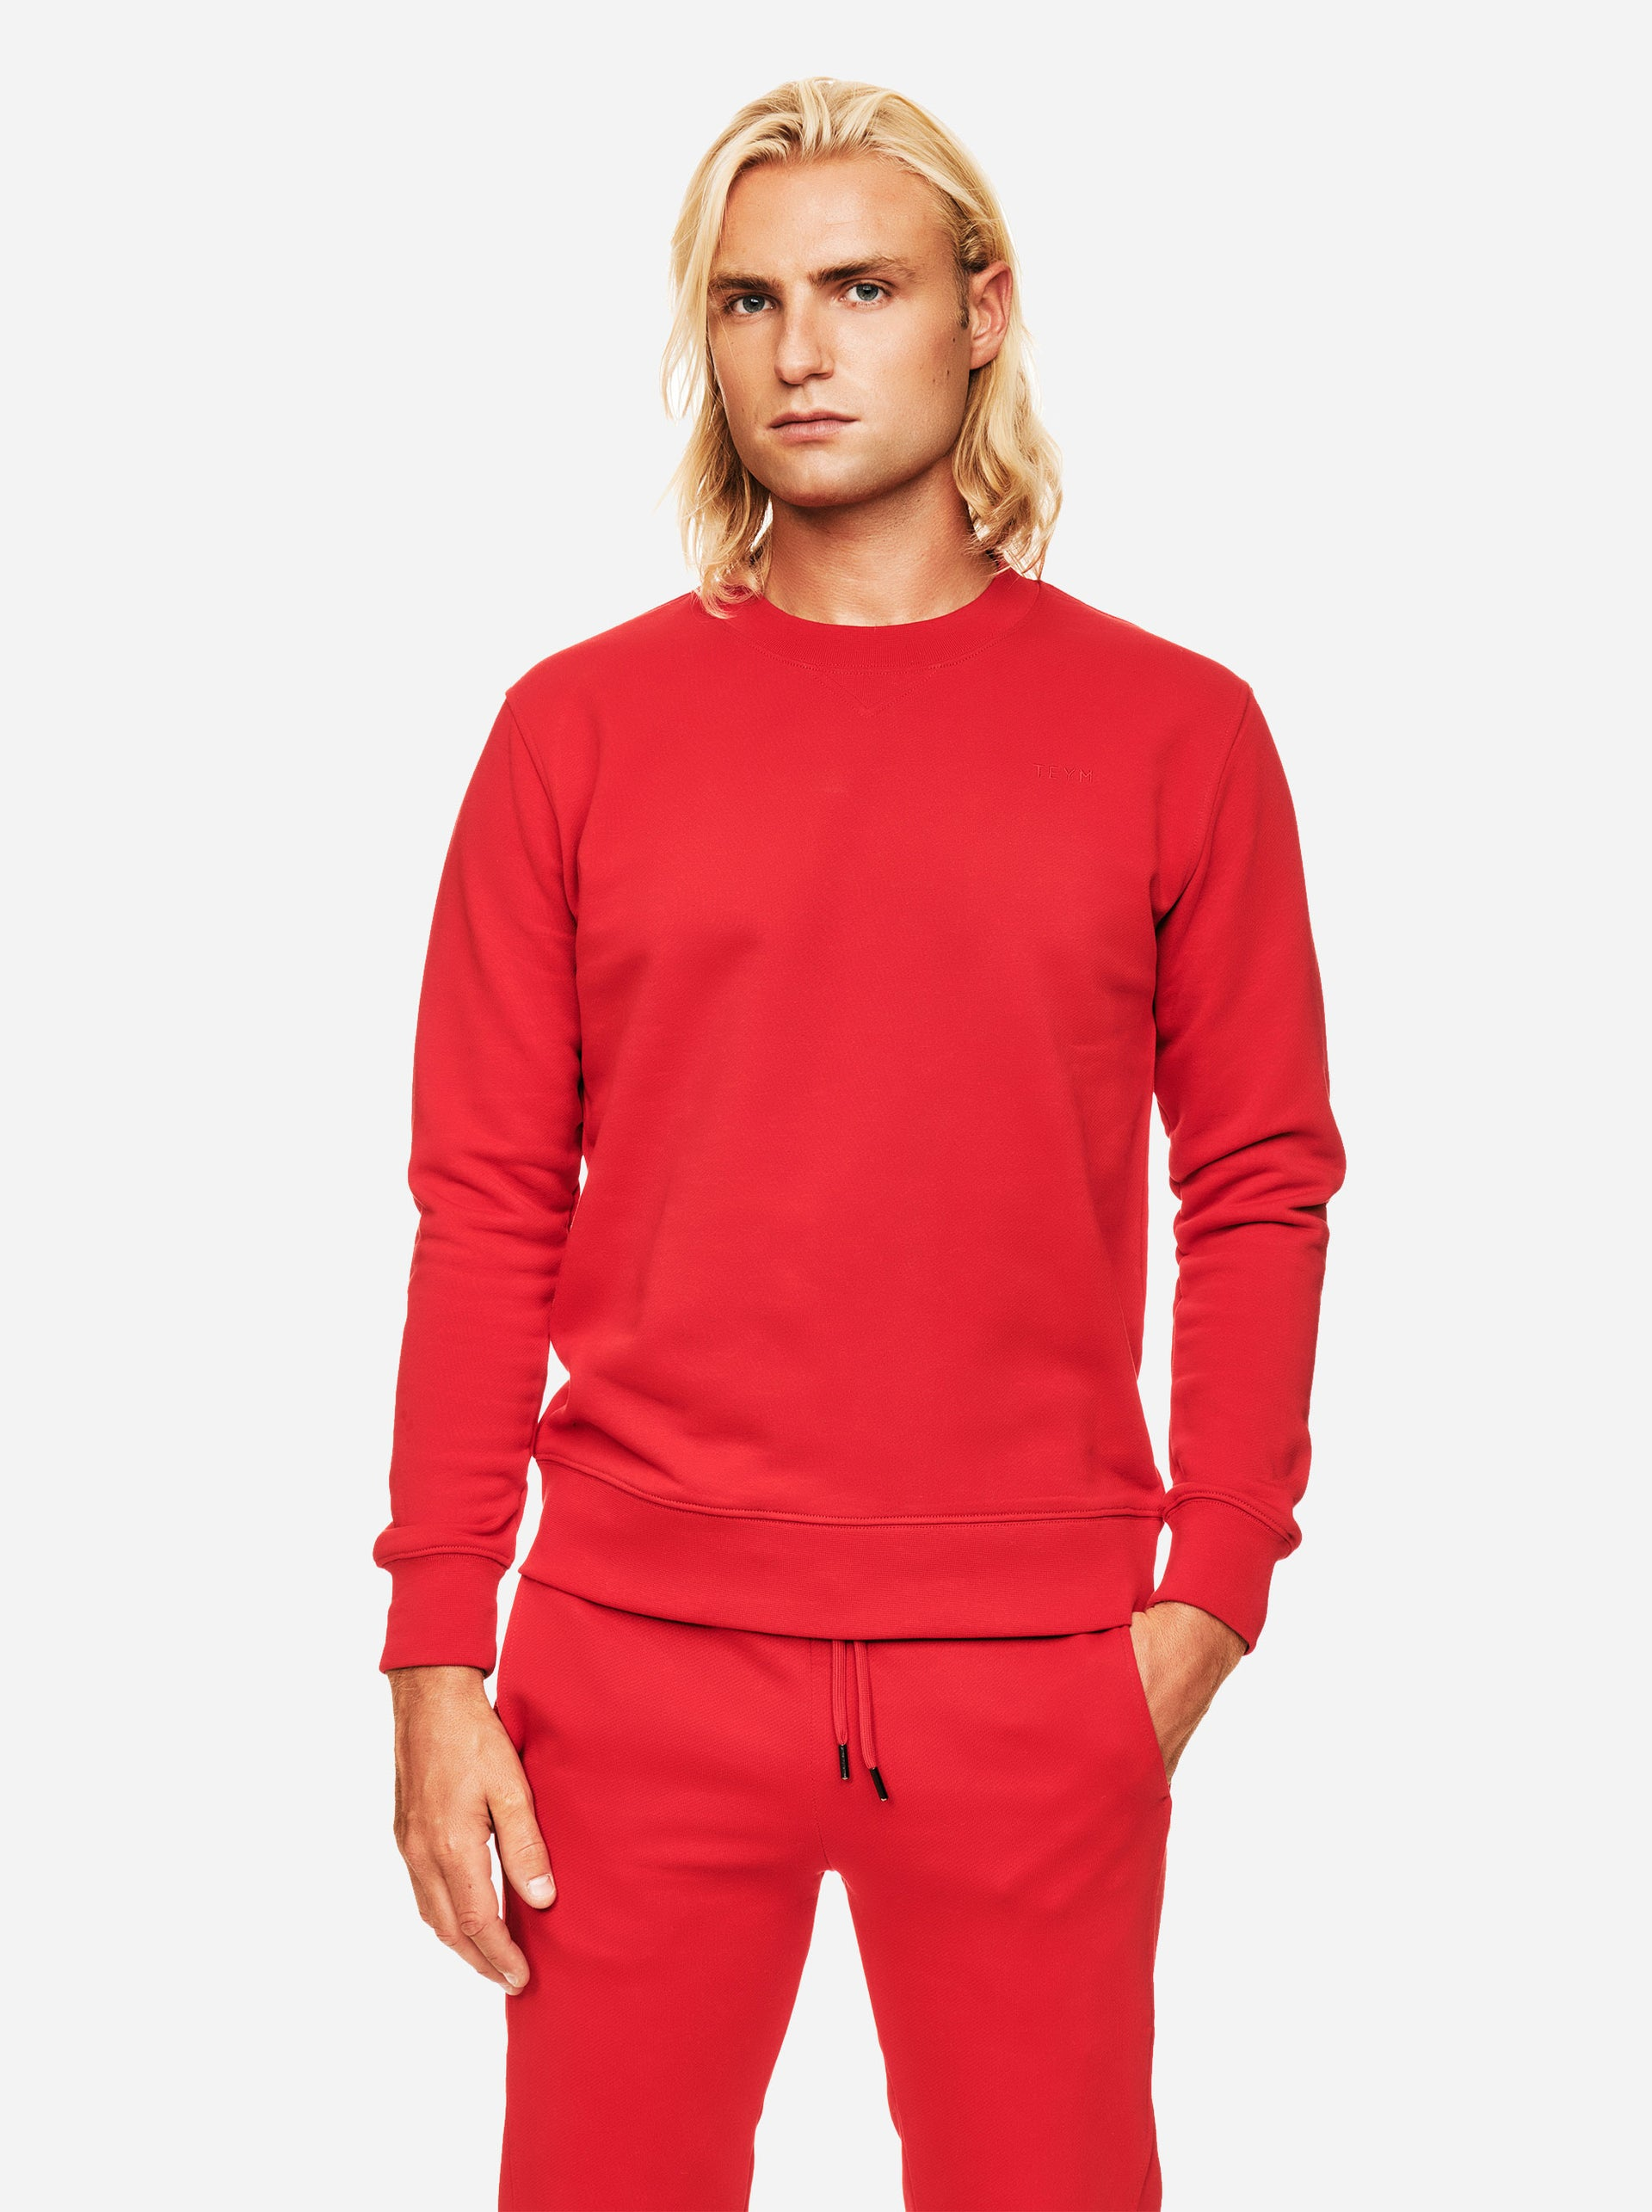 The Sweatshirt - Red